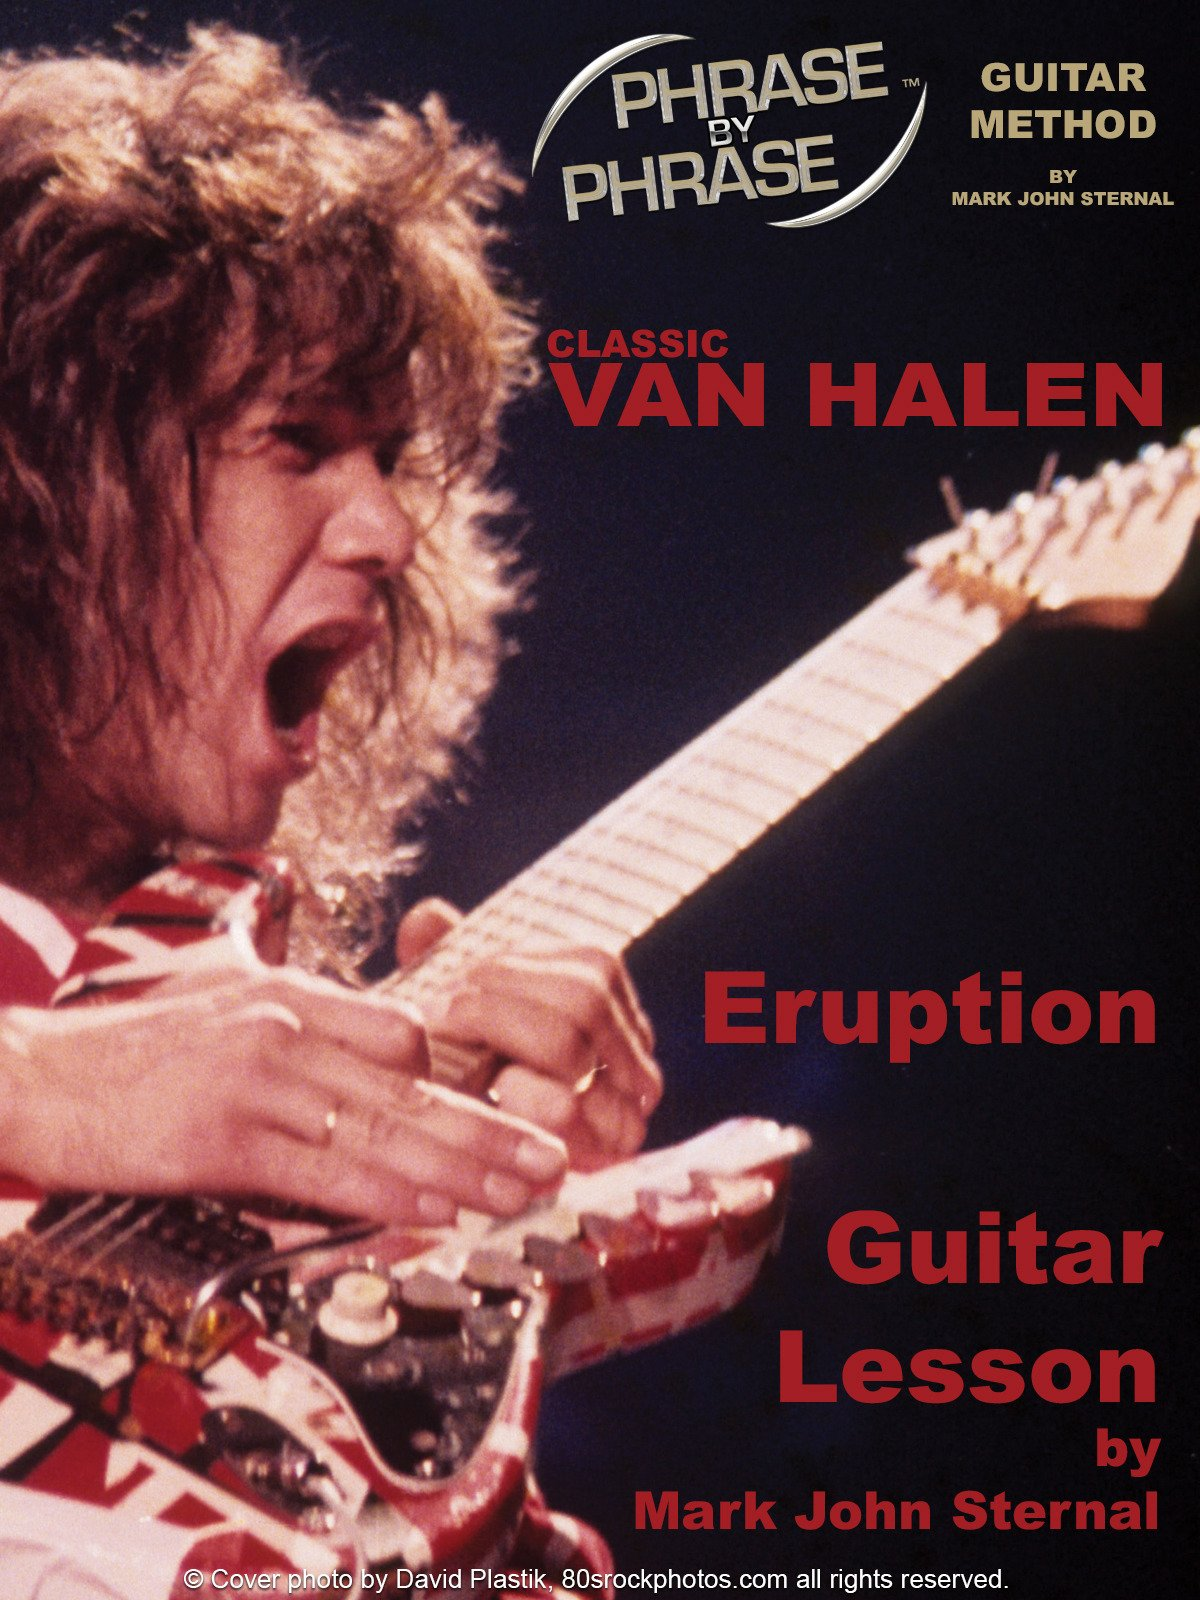 Watch Phrase By Phrase Guitar Method Classic Van Halen Lesson Learn How To Play Eruption Prime Video